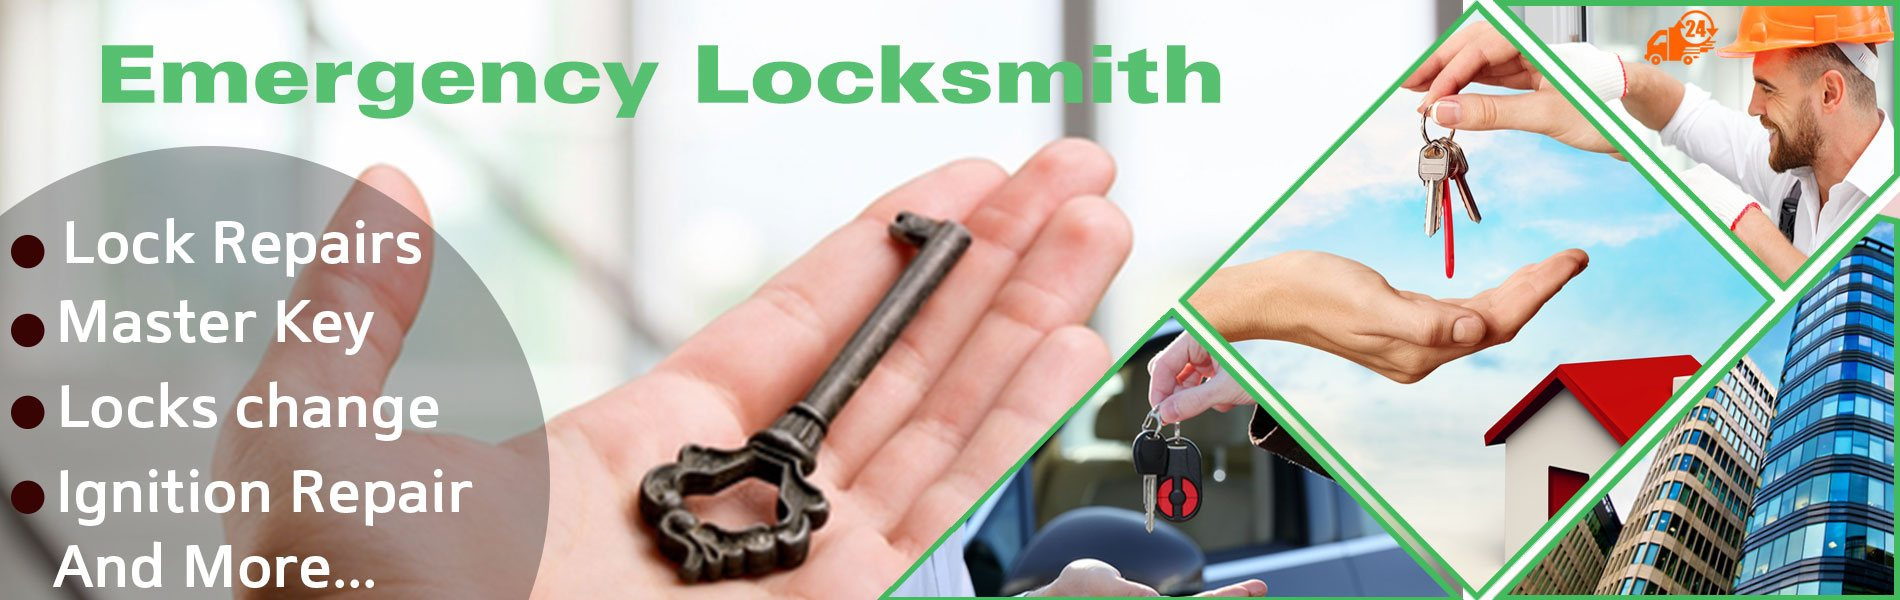 Lock Safe Services Alameda, CA 510-404-0368